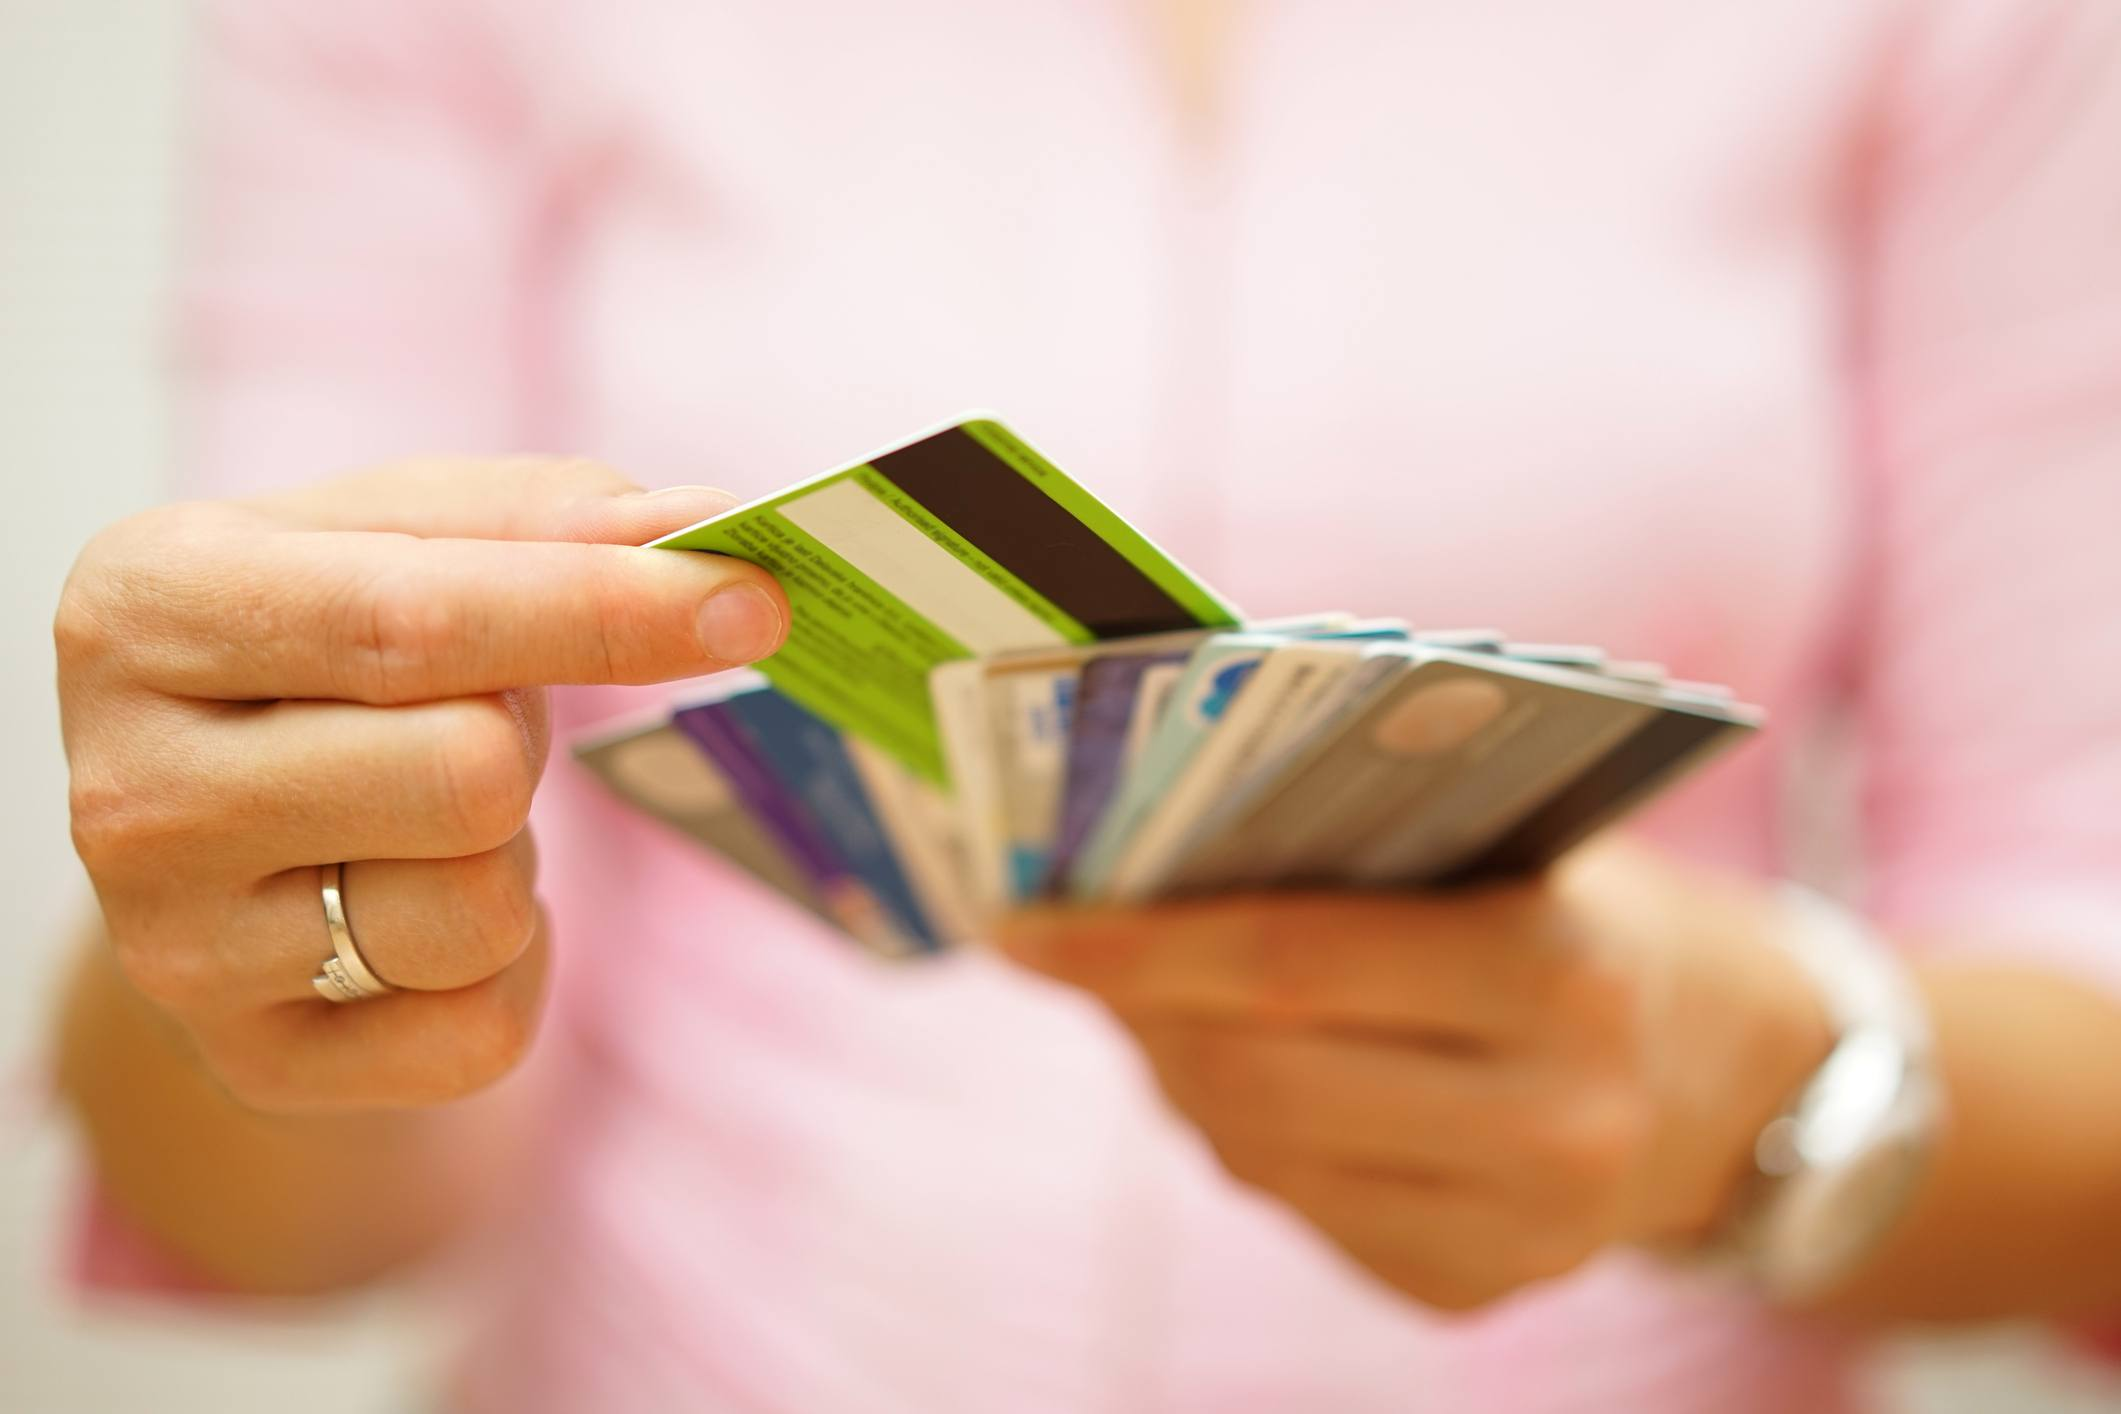 A woman chooses from many credit cards to add to her debt